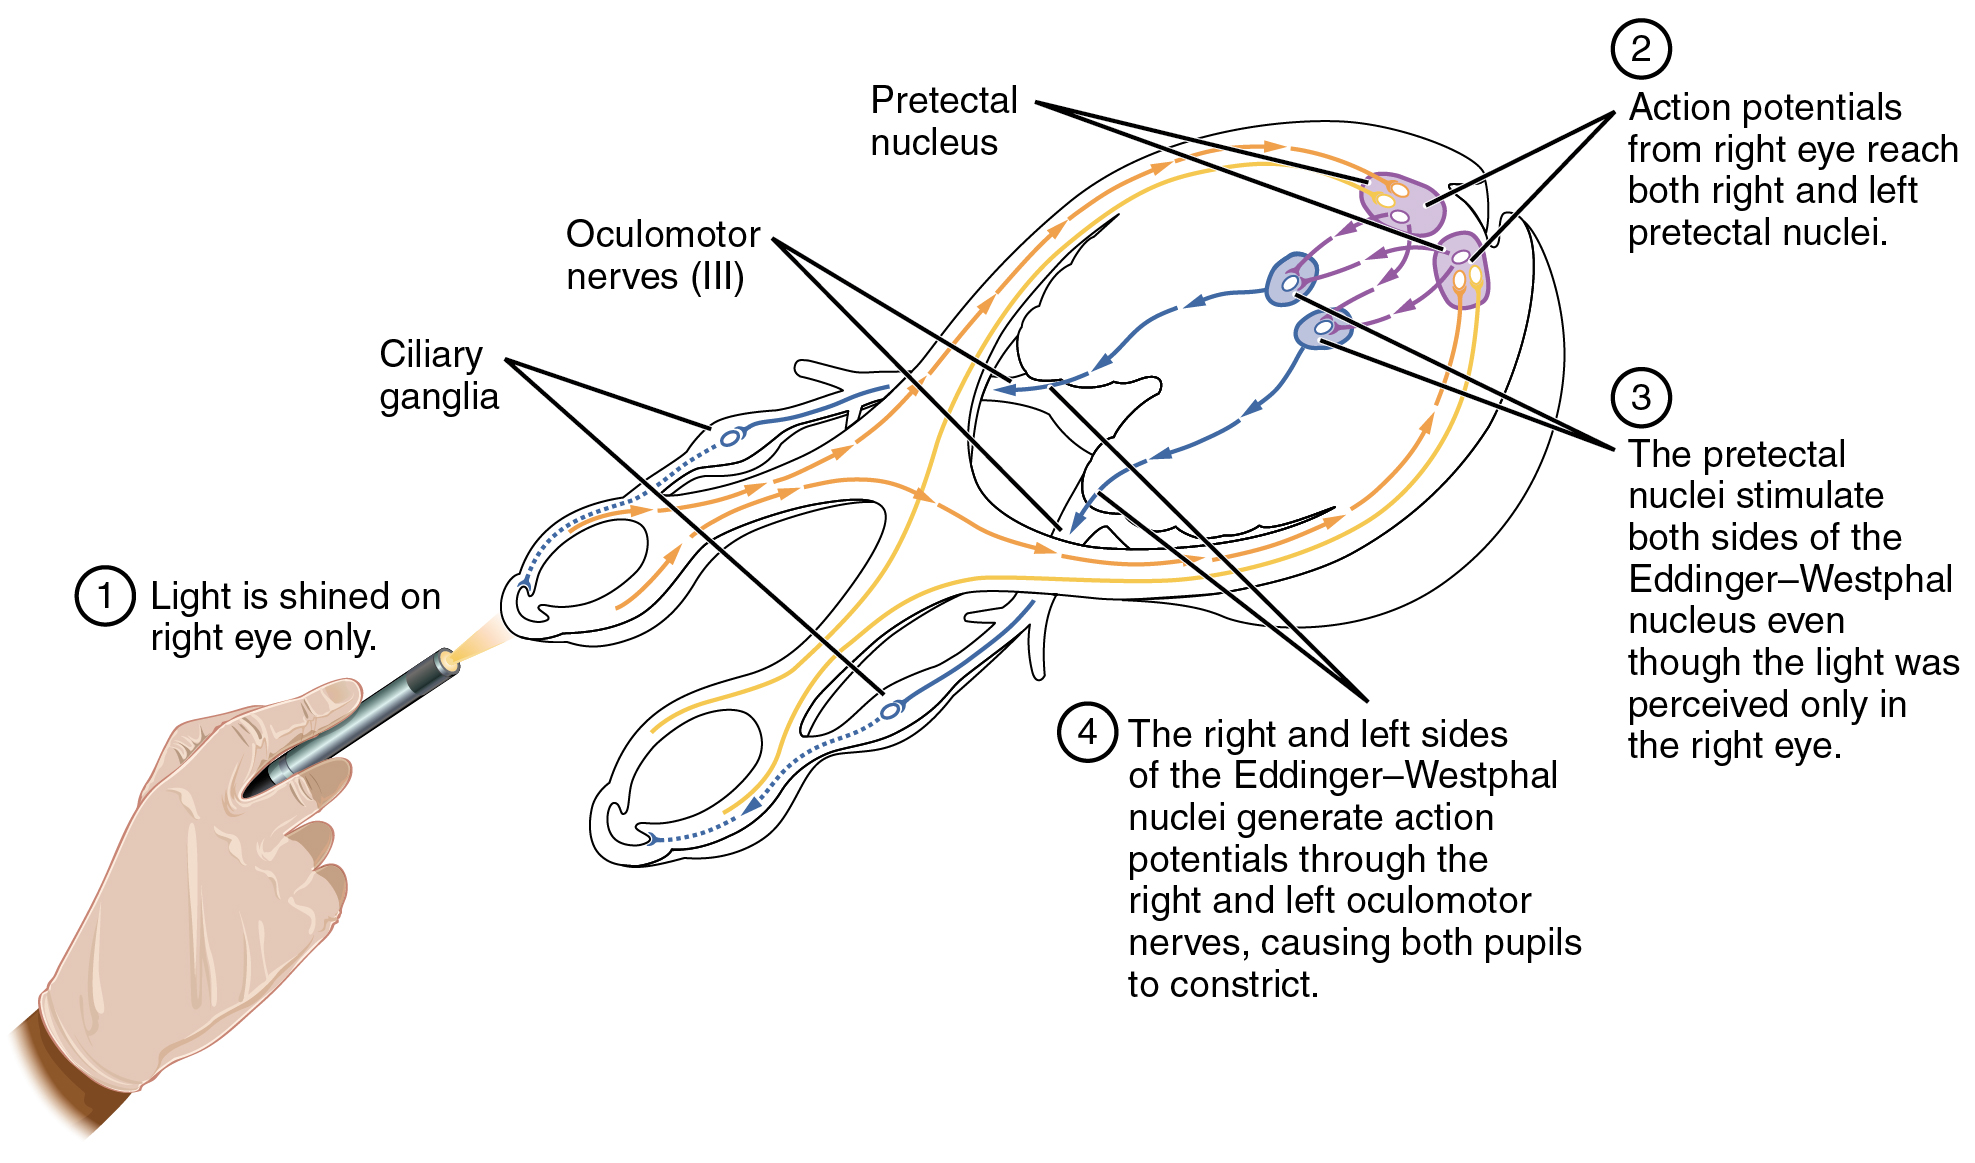 This diagram shows the connections between the different nerves and pathways in the eyes. A hand is shown shining a light on the right eye, and arrows and text callouts indicate the different pathways that are activated.